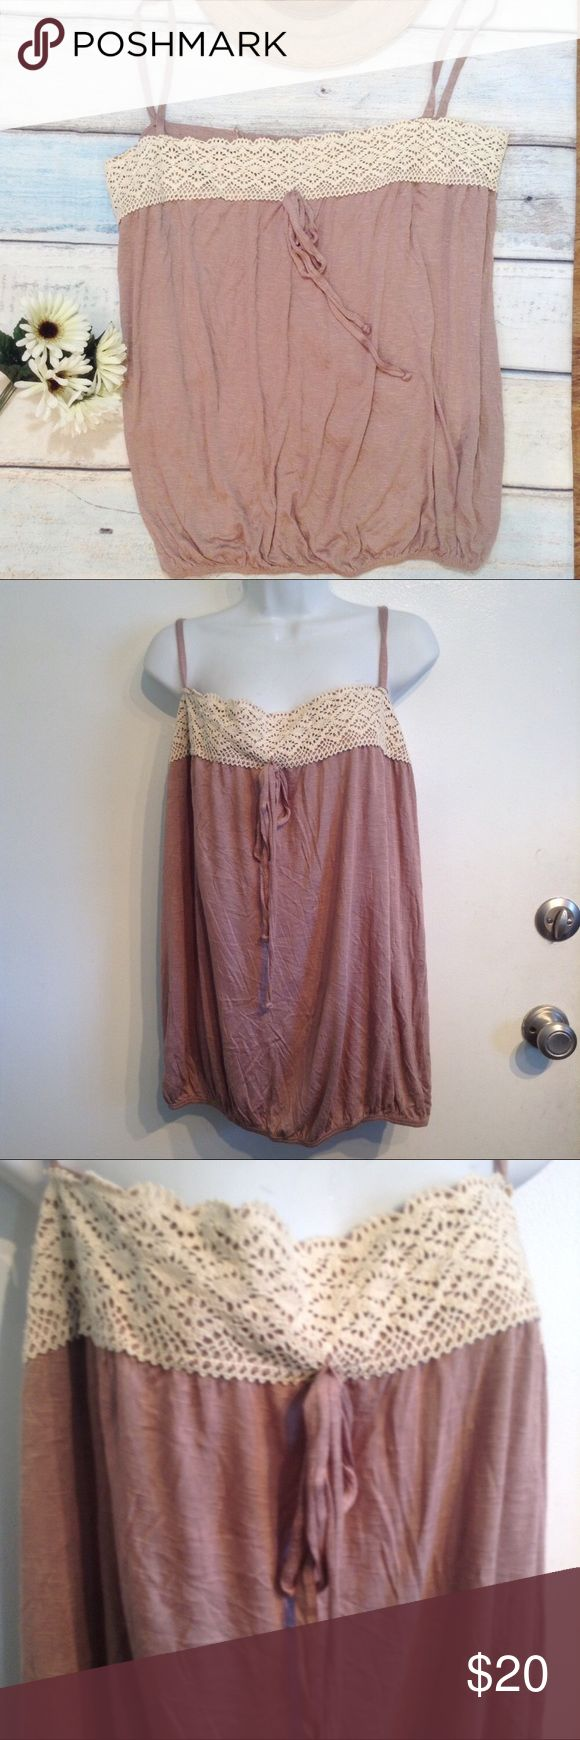 NWT PLUS SIZE Neutral Crochet Tank Top New with tag, though tag has been ripped in half. Plus soze neutral brown tank top with cream crochet trim. Smocked elastic in back for a comfortable and flattering fit. Size 2xl. No modeling. Smoke free home. I do discount bundles Caren Sport Tops Tank Tops